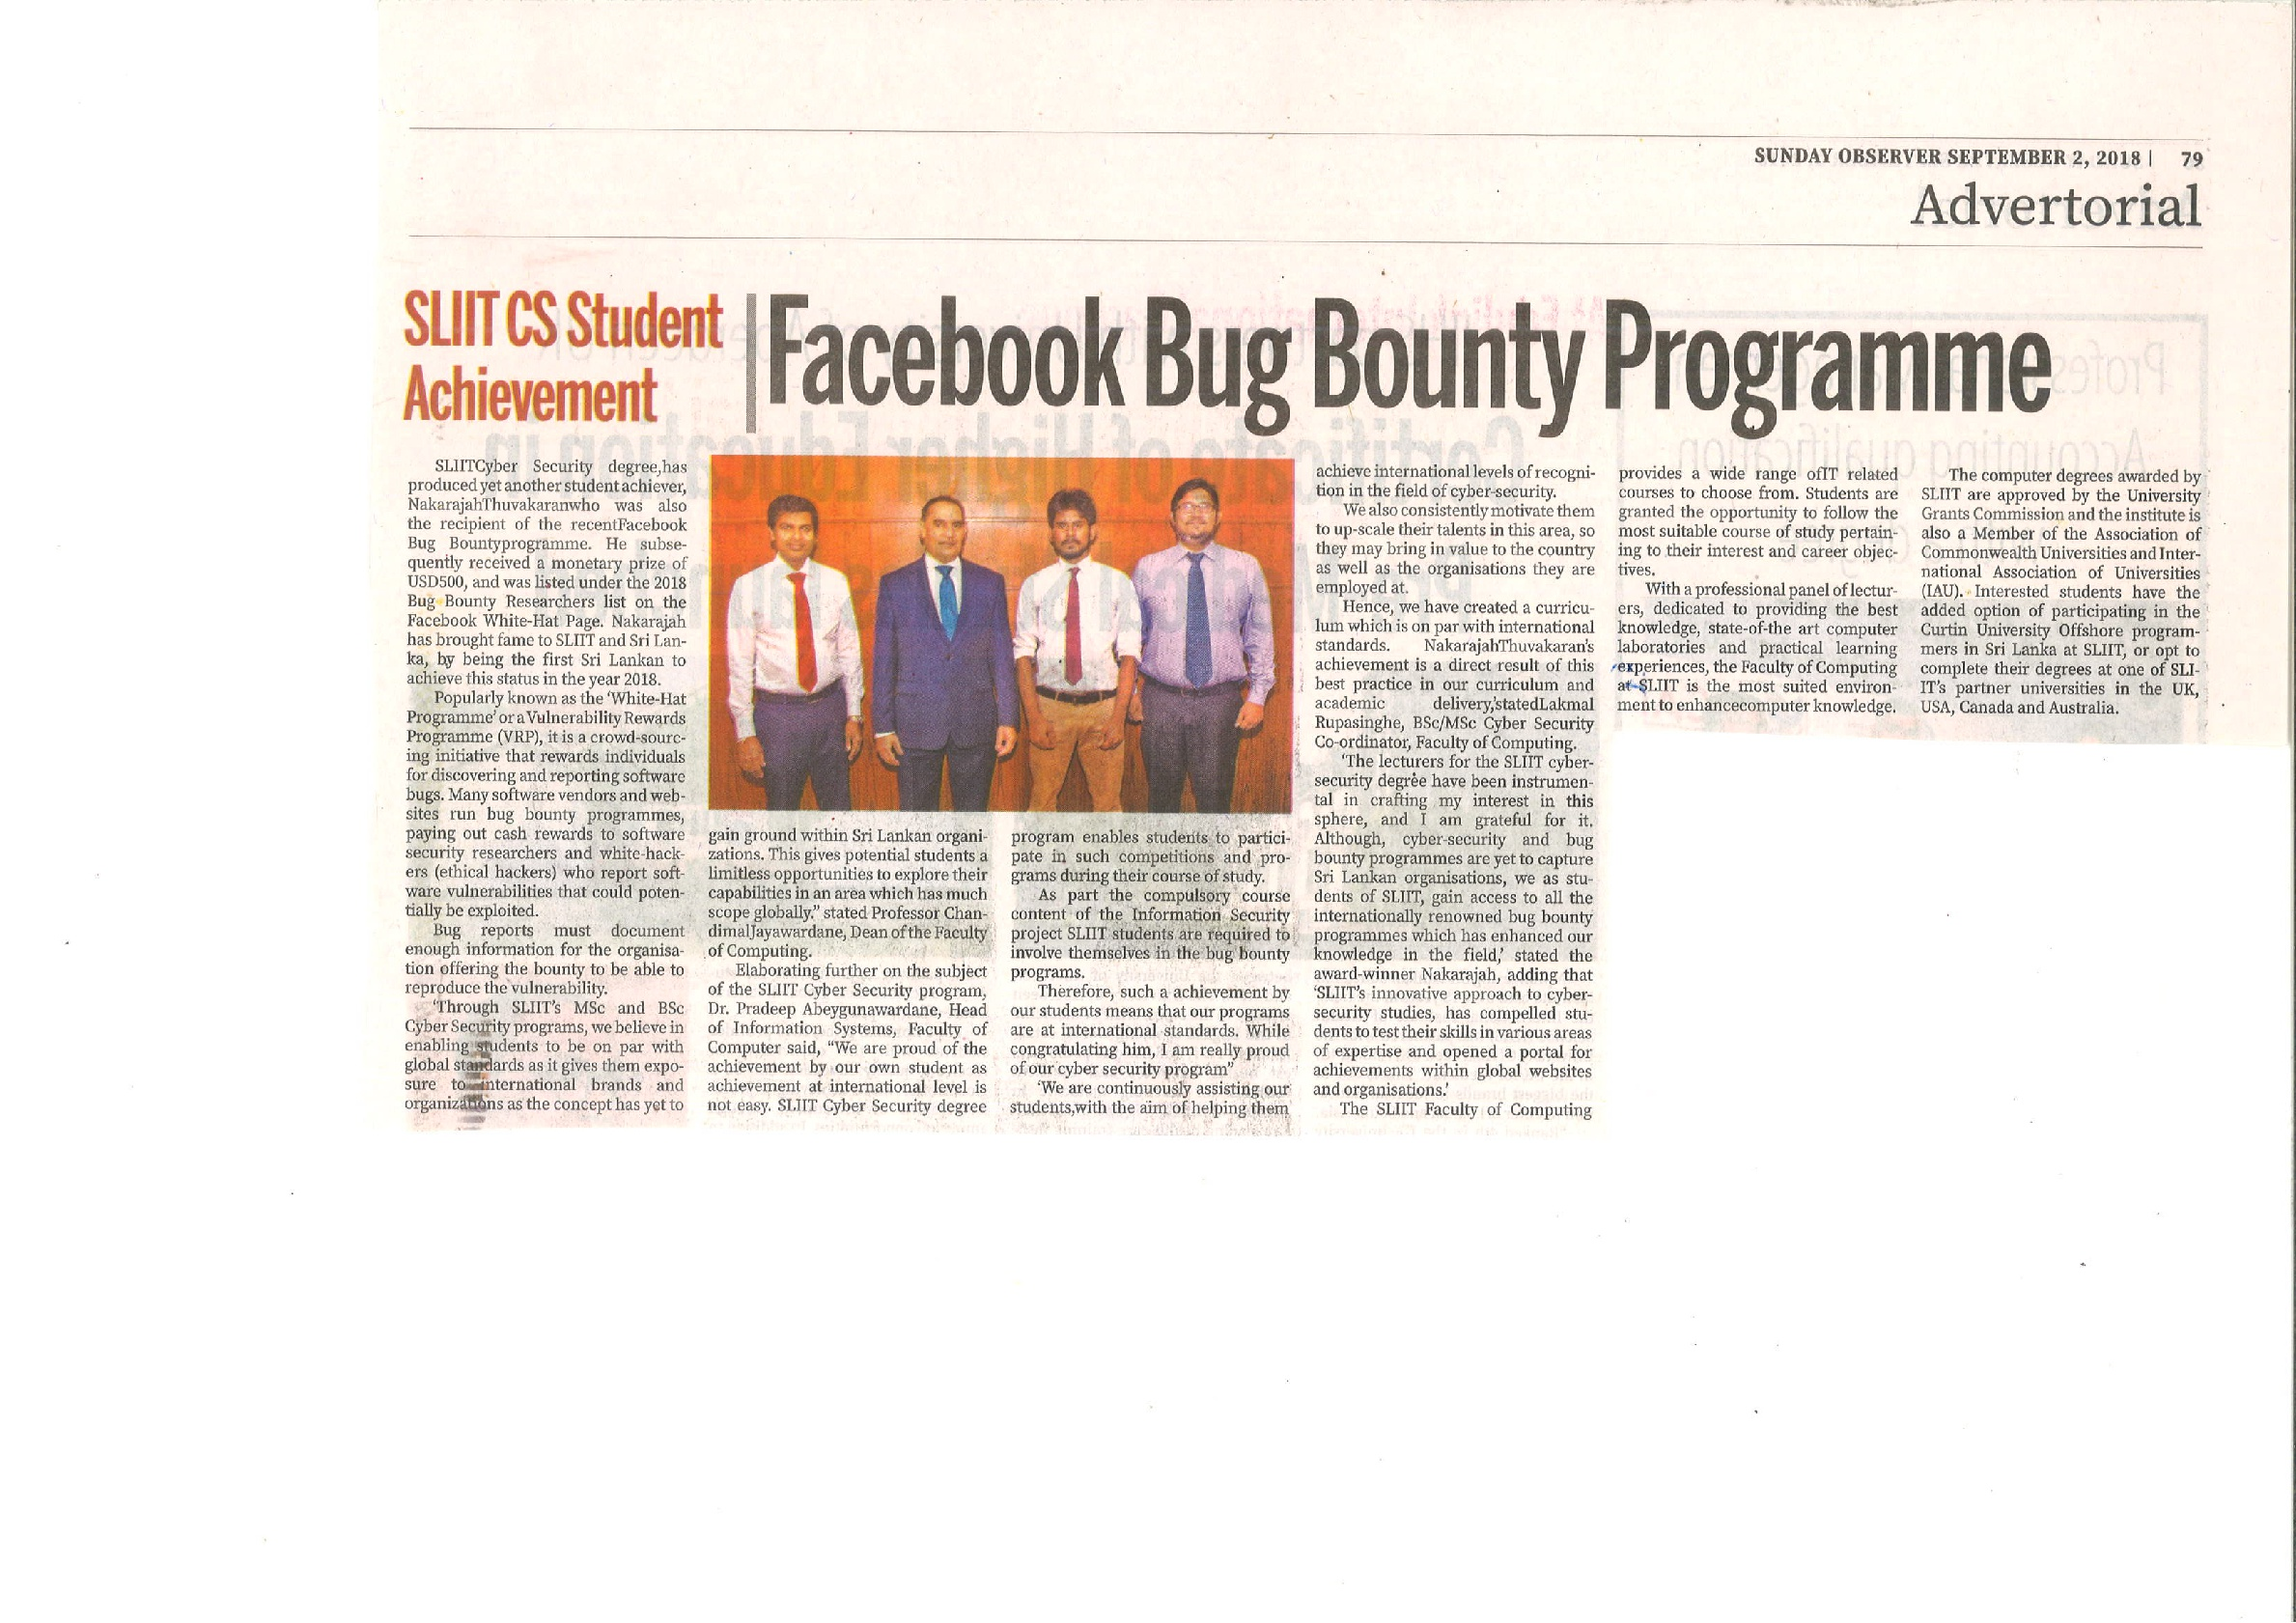 SLIIT-CS-Student-Achievement-Facebook-Bug-Bounty-Programme-001-1